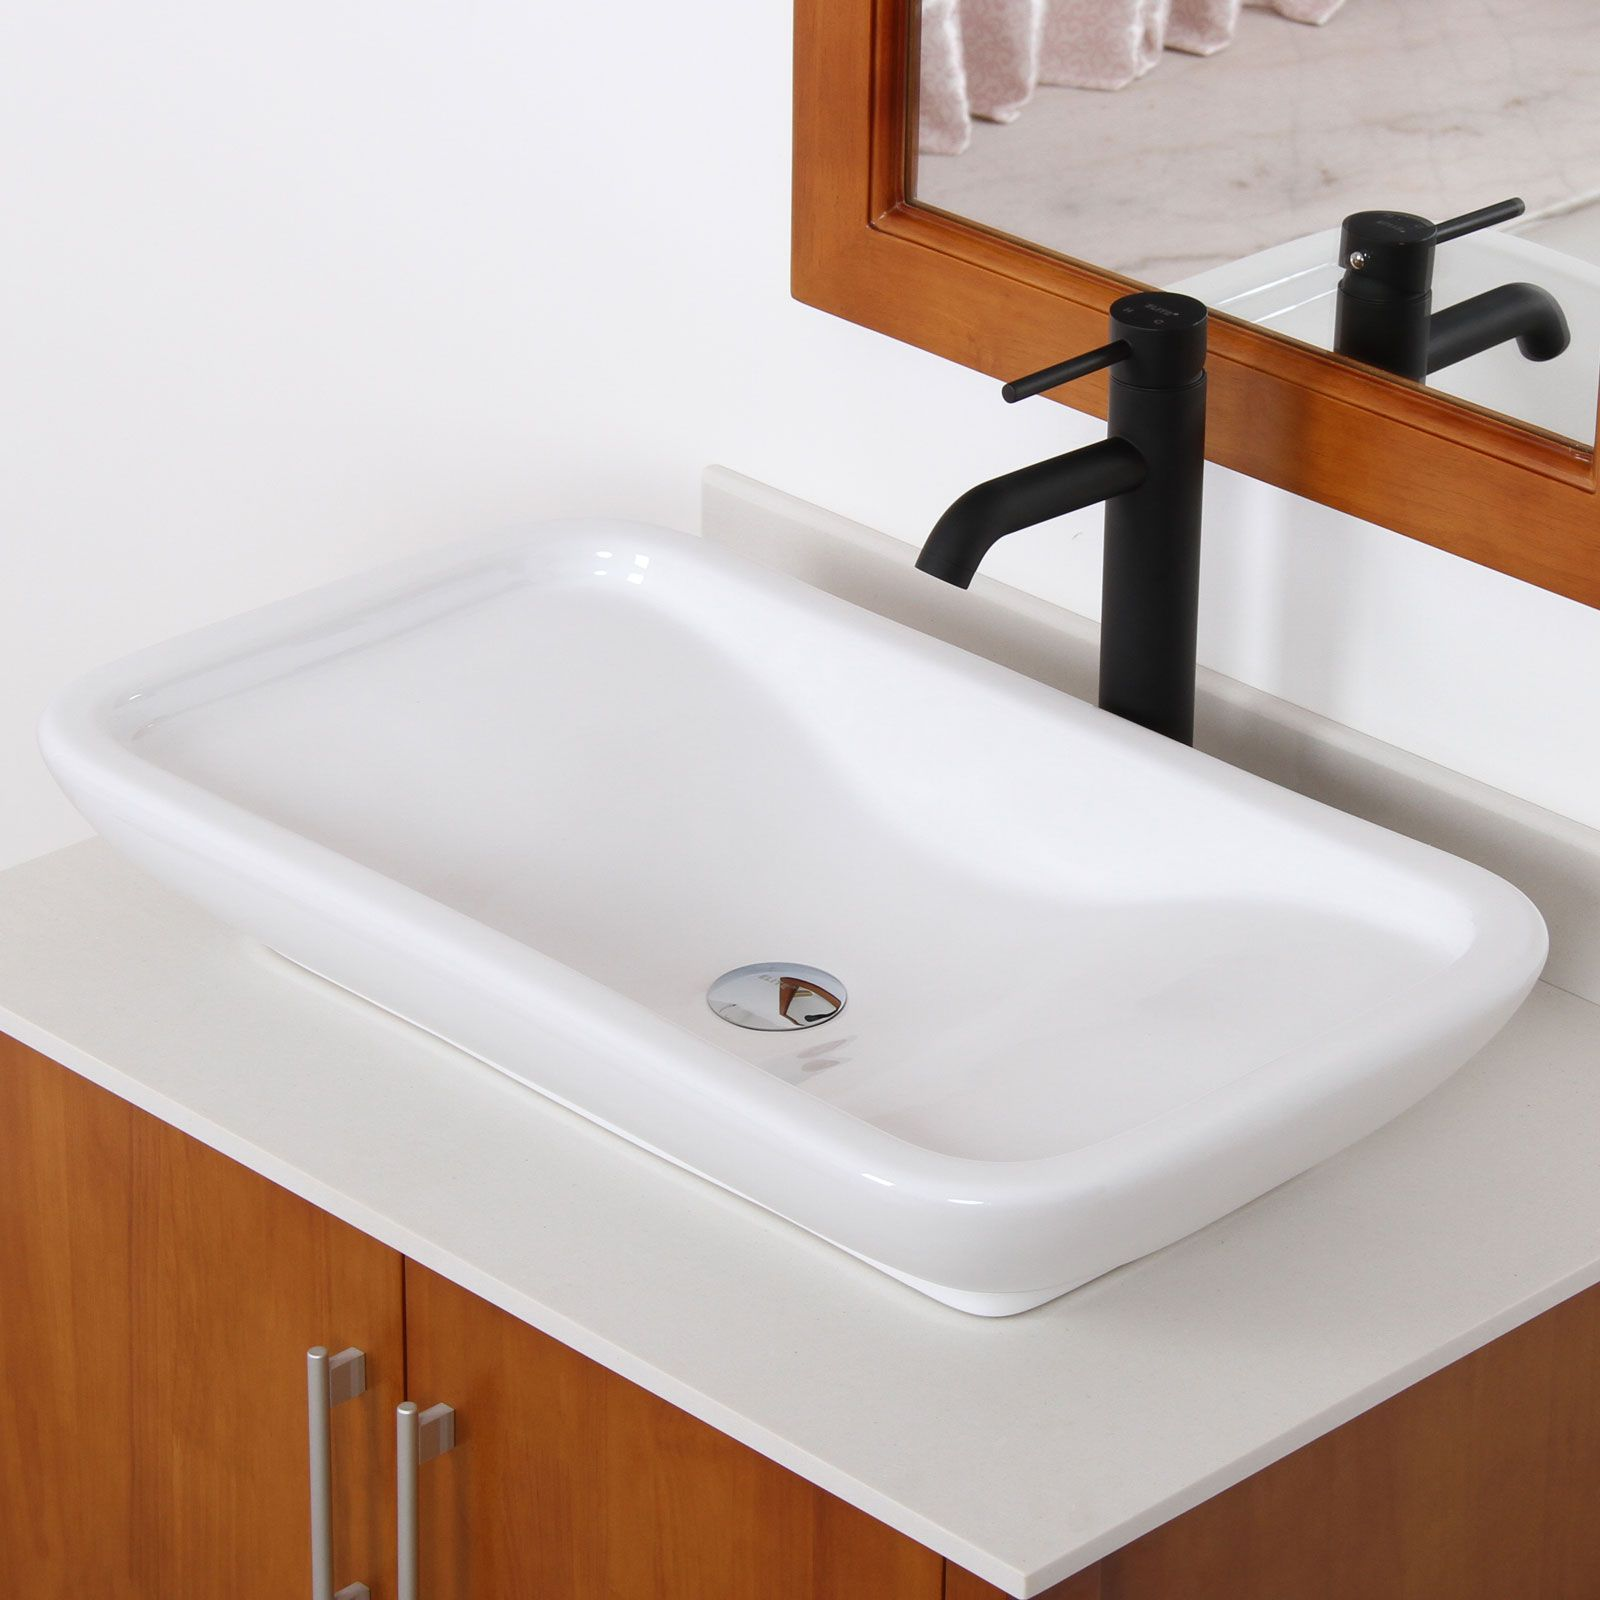 Elite Ceramic Bathroom Sink with Unique Rectangle Design Intended